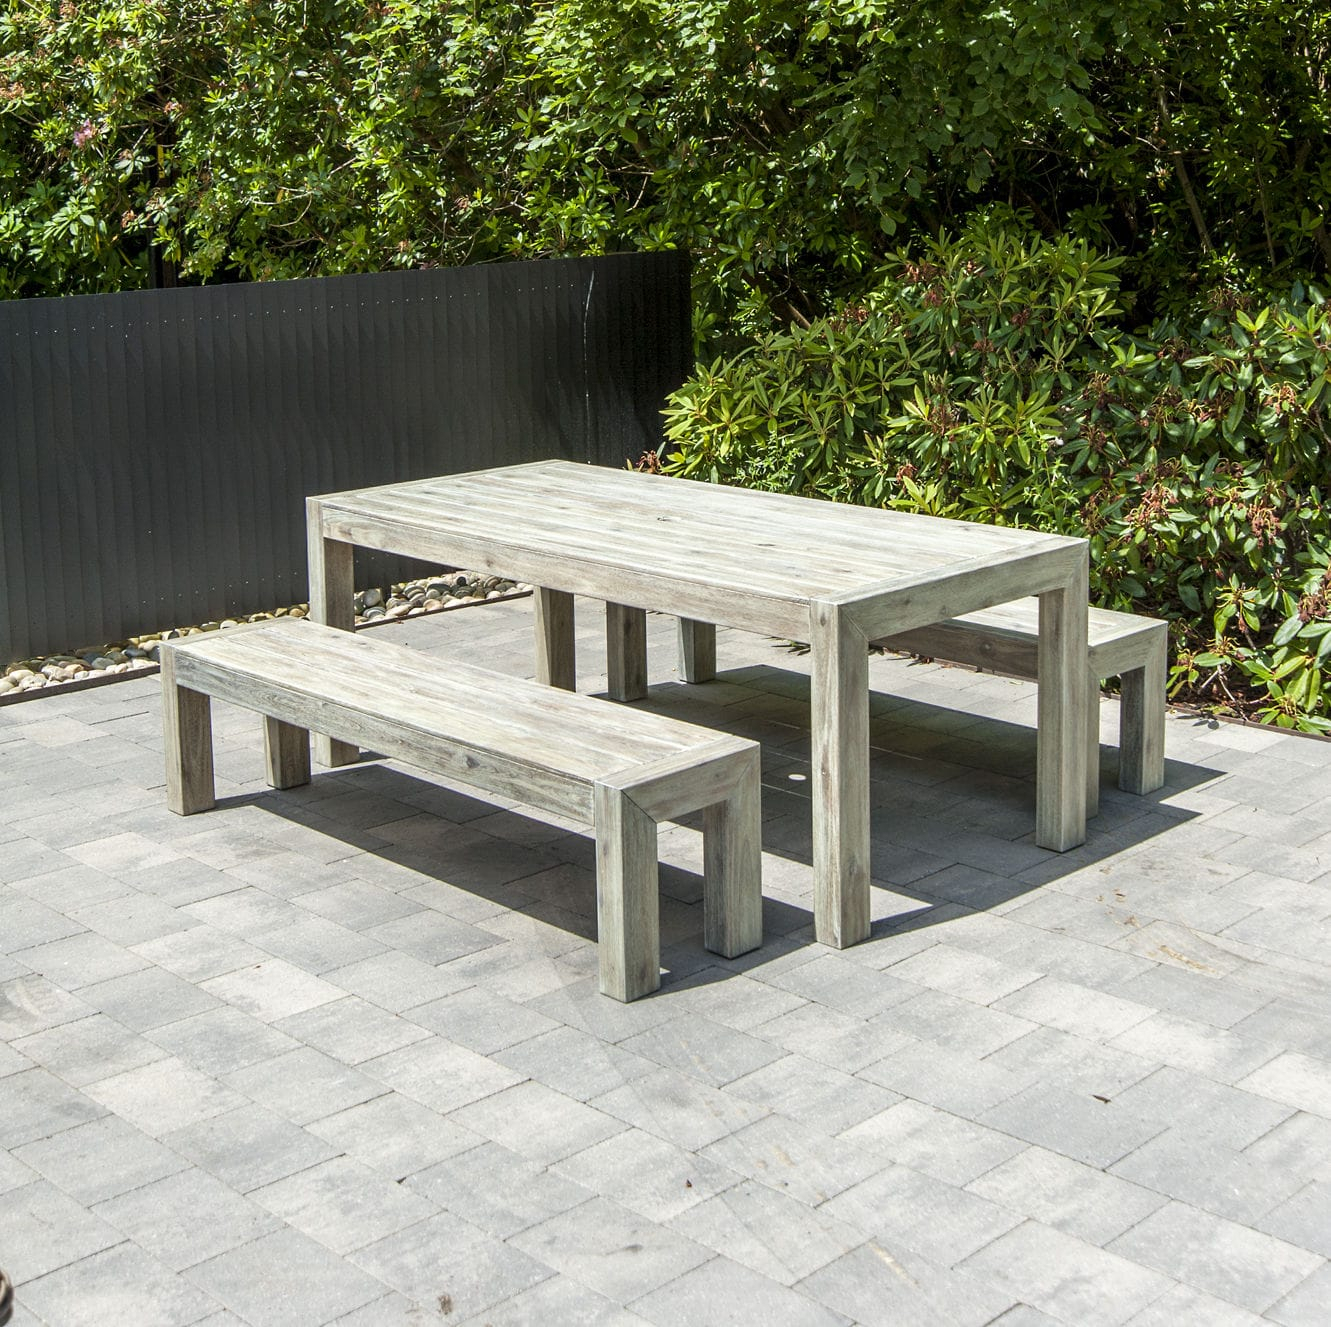 Garden Bench / Traditional / Acacia / Fsc Certified Inside Wood Garden Benches (View 15 of 25)